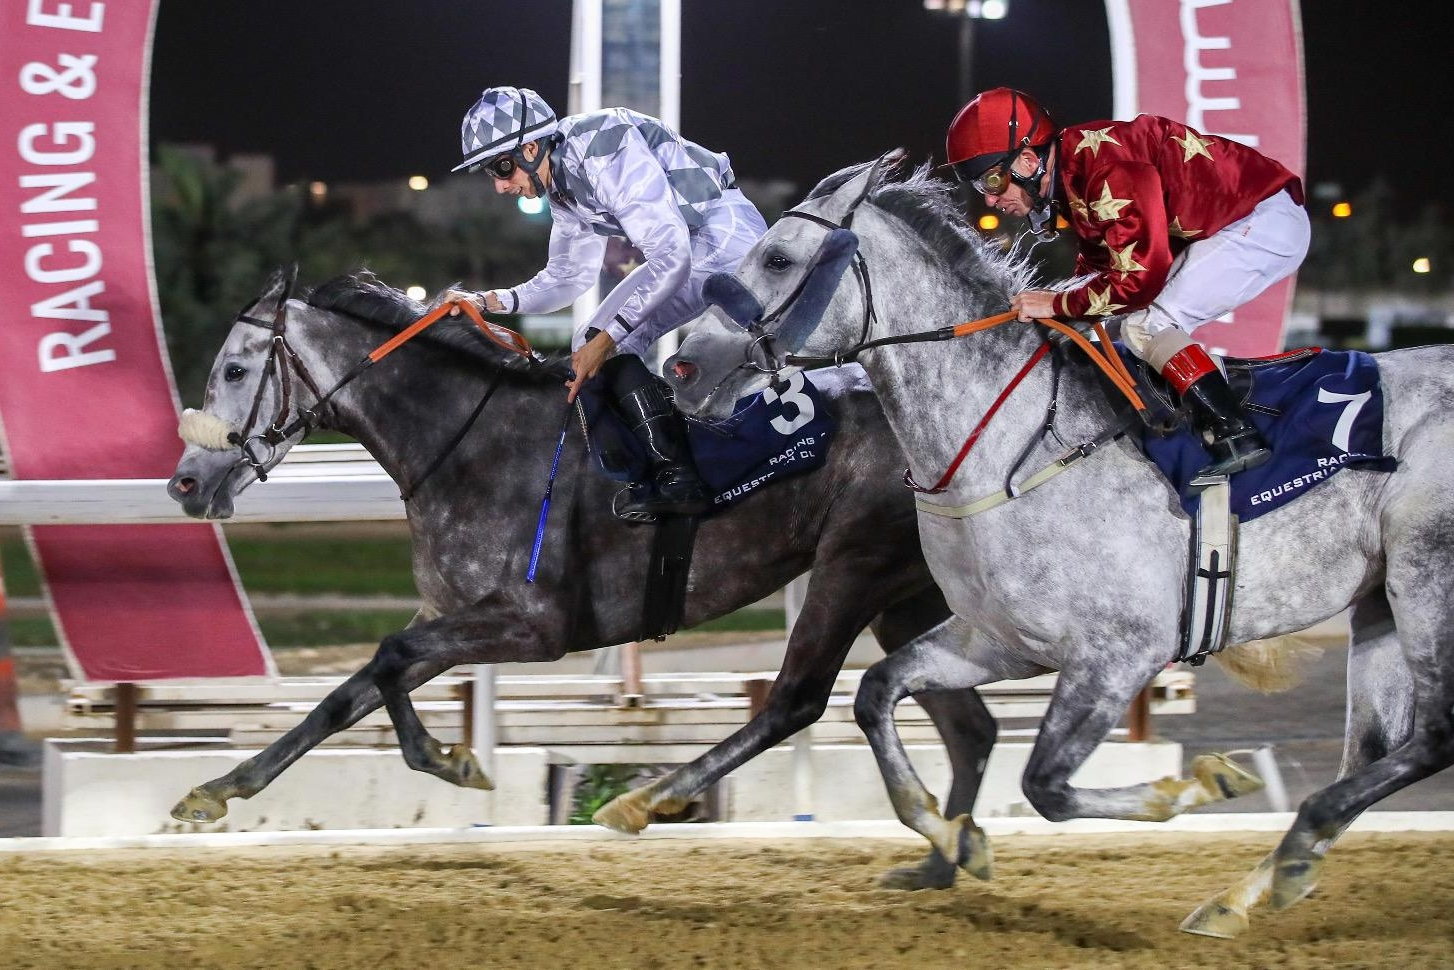 L/B Arabian Handicap, 1700m - 3 April 2019